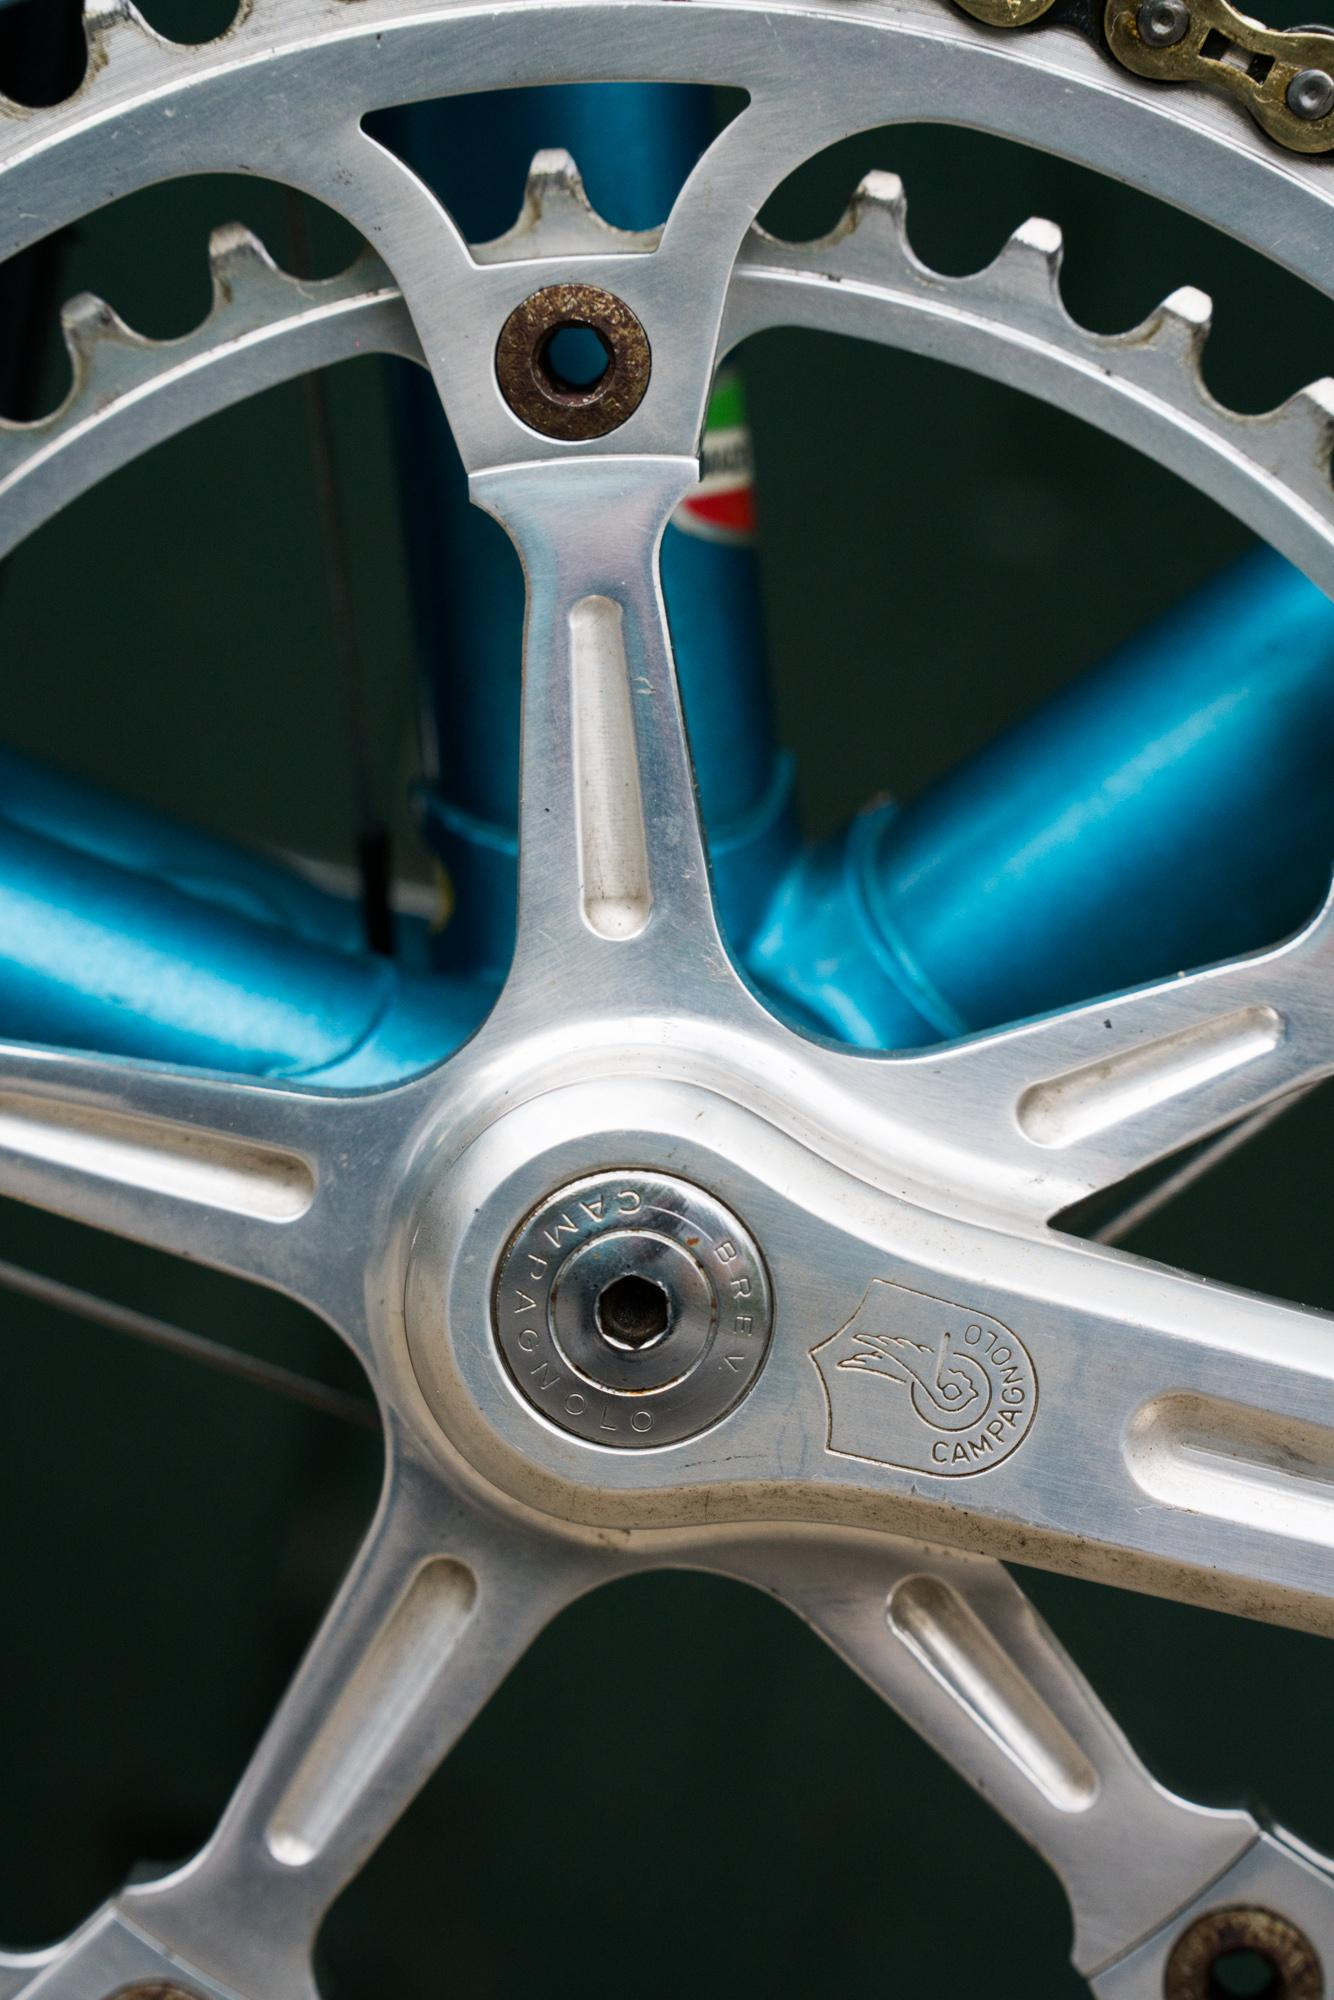 Johns Cool Colnago Coolnago (12 of 27)